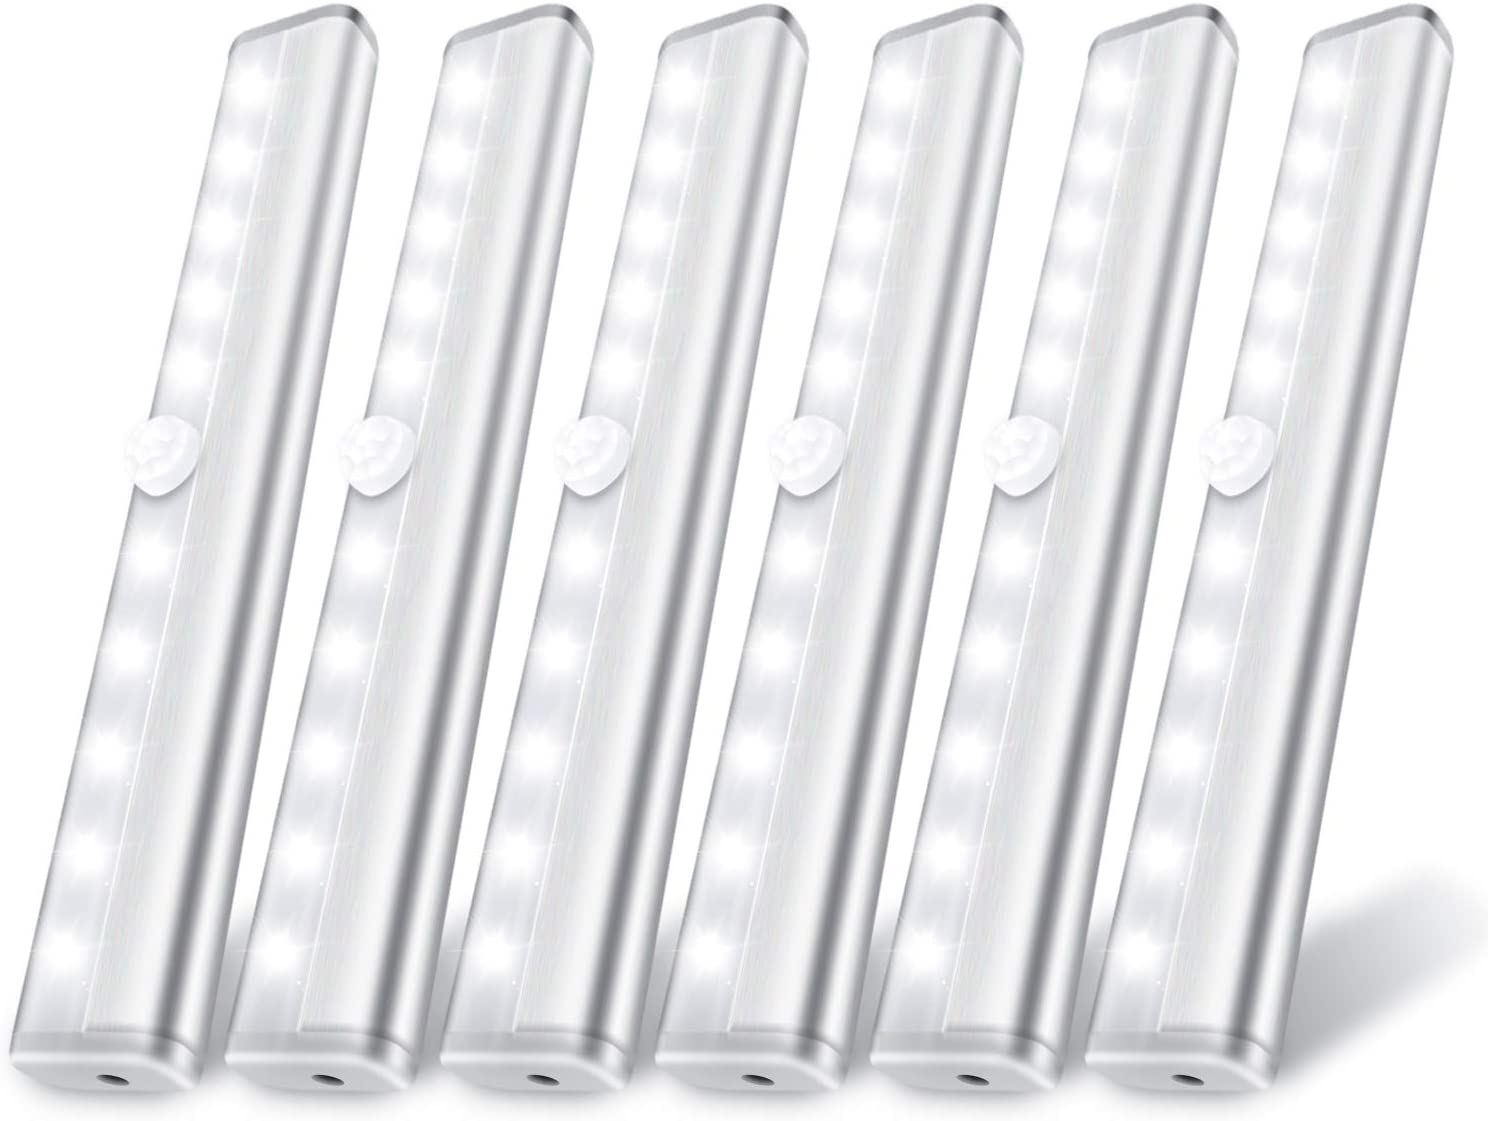 6 Pack LED Motion Sensor Lights, 10 LED Closet Battery Operated Lights, Stick-On Anywhere Magnetic Wireless Night Light Bar, Led Safe Light Indoor for Closet Stairs Wardrobe